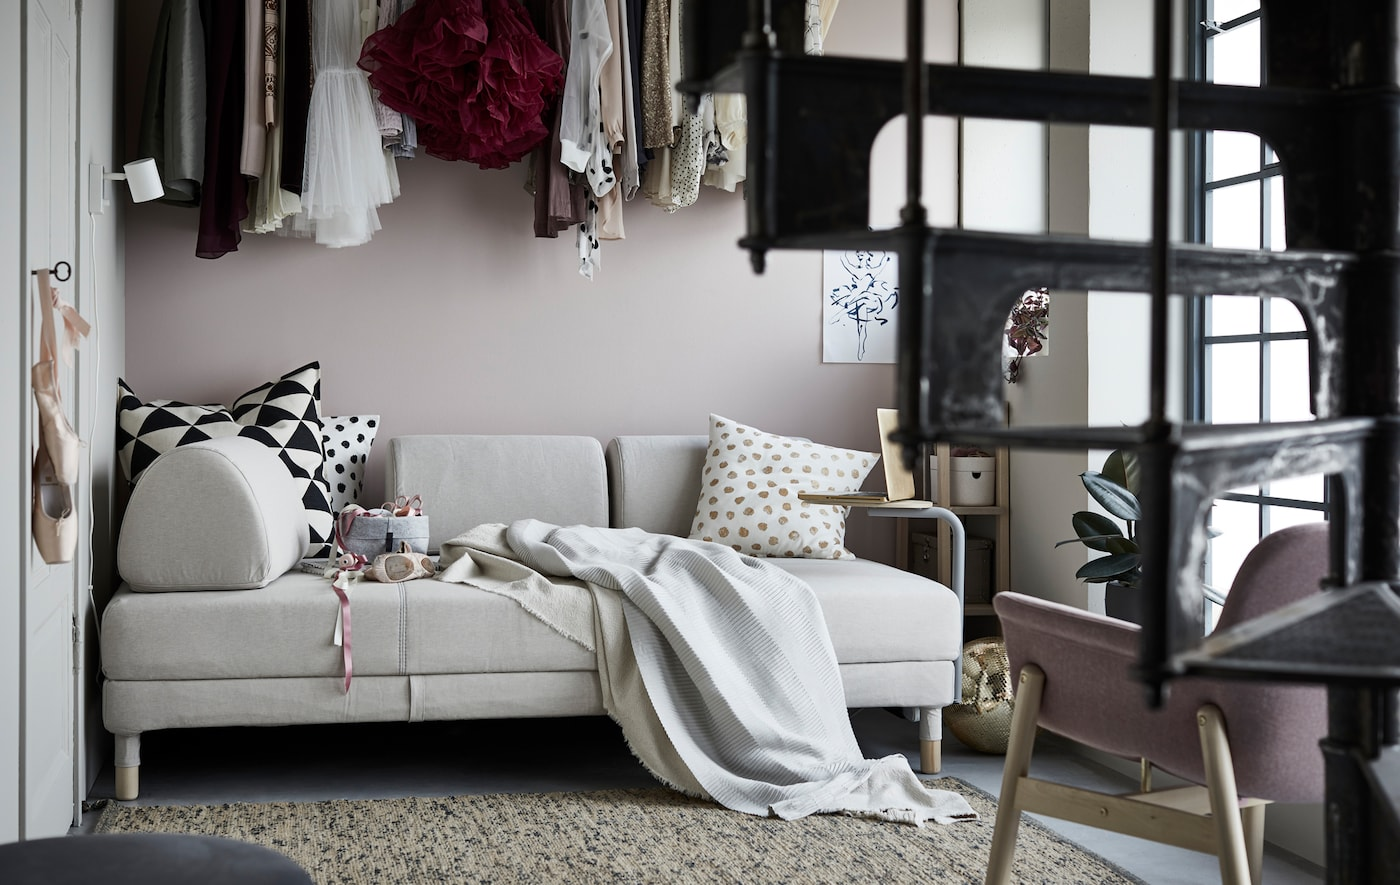 An IKEA FLOTTEBO sleeper sofa in a room that includes a spiral staircase and hanging clothes above the sofa.